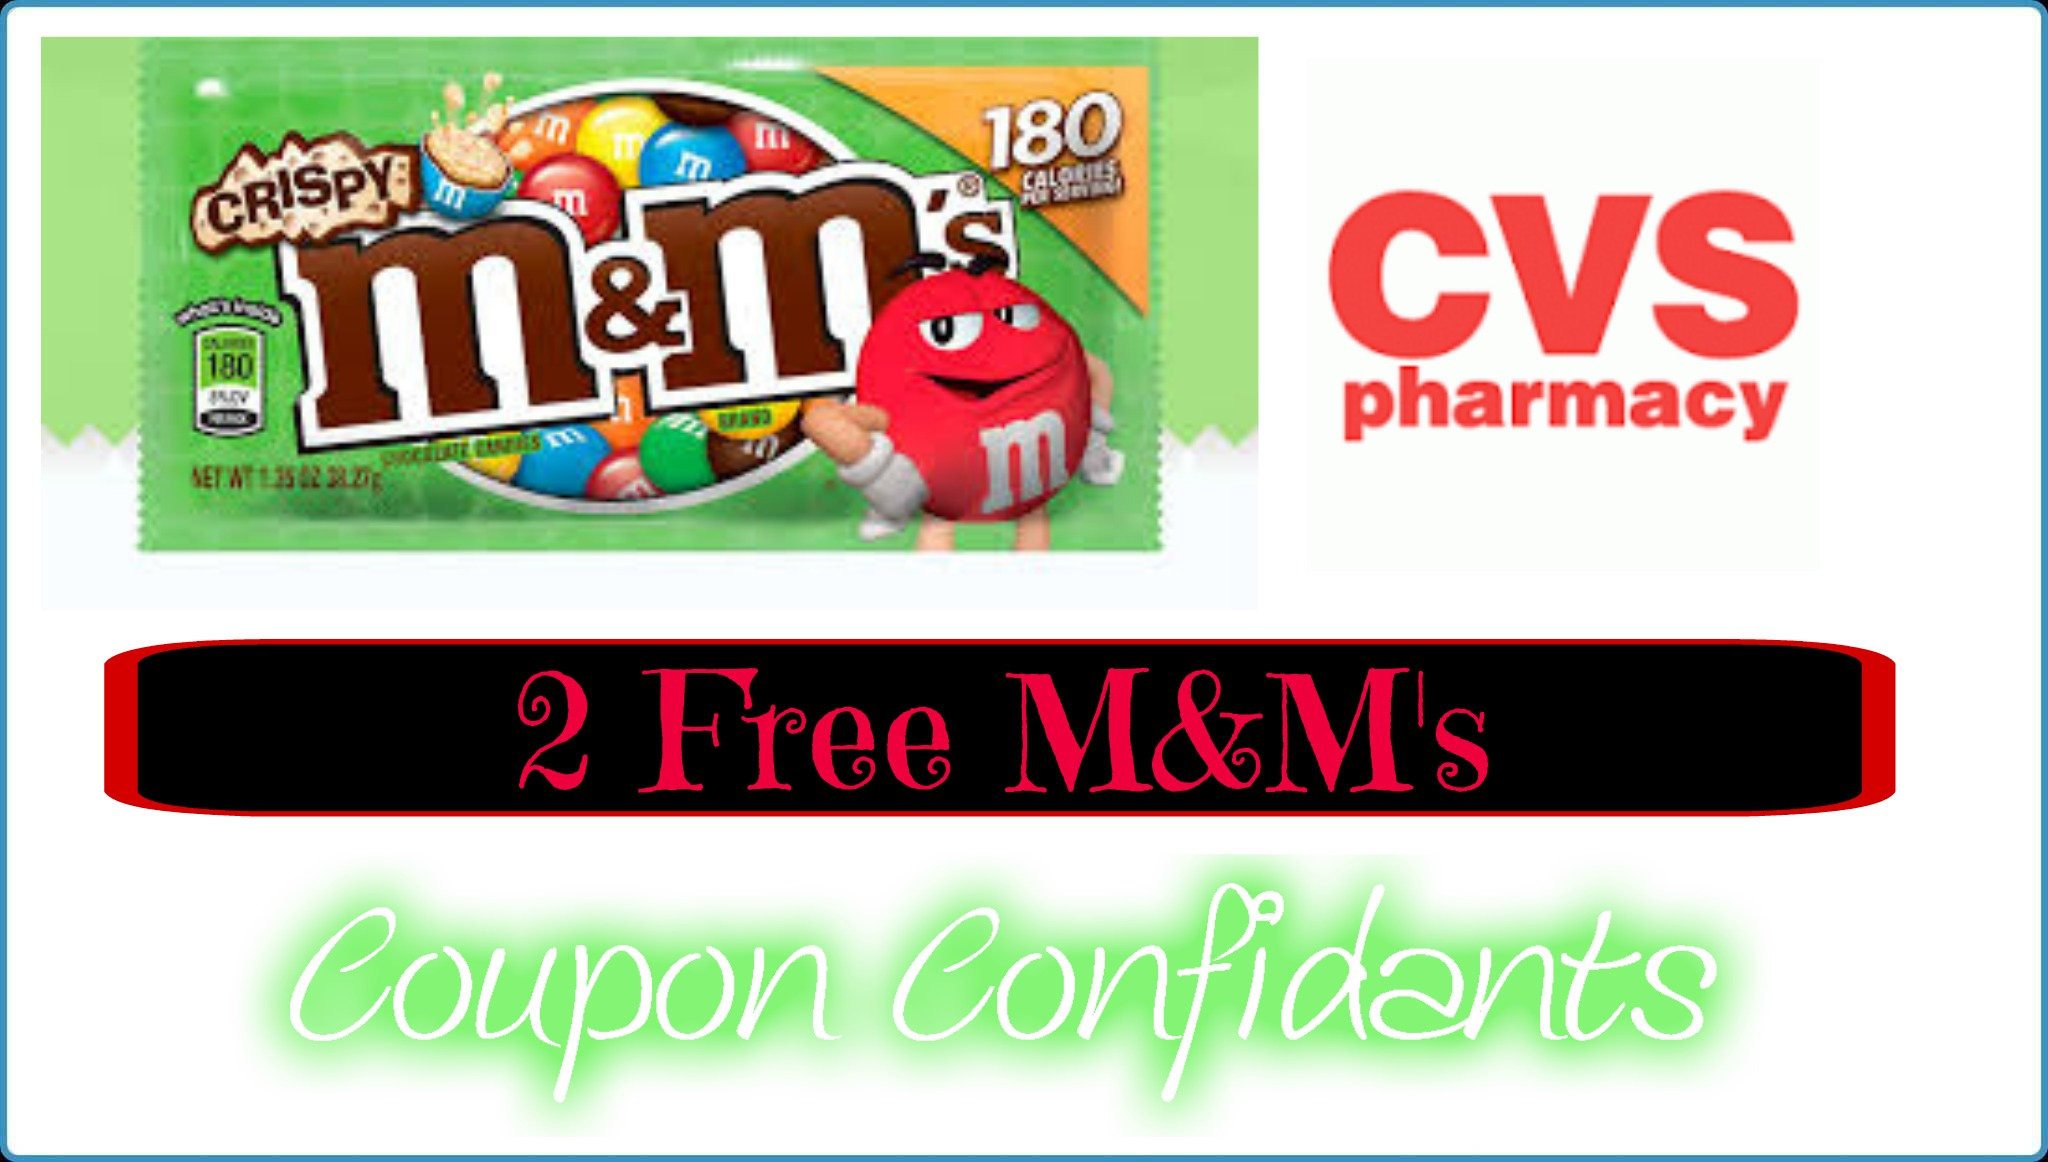 Stocking Stuffer alert: 2 FREE bags of M&Ms @ CVS!